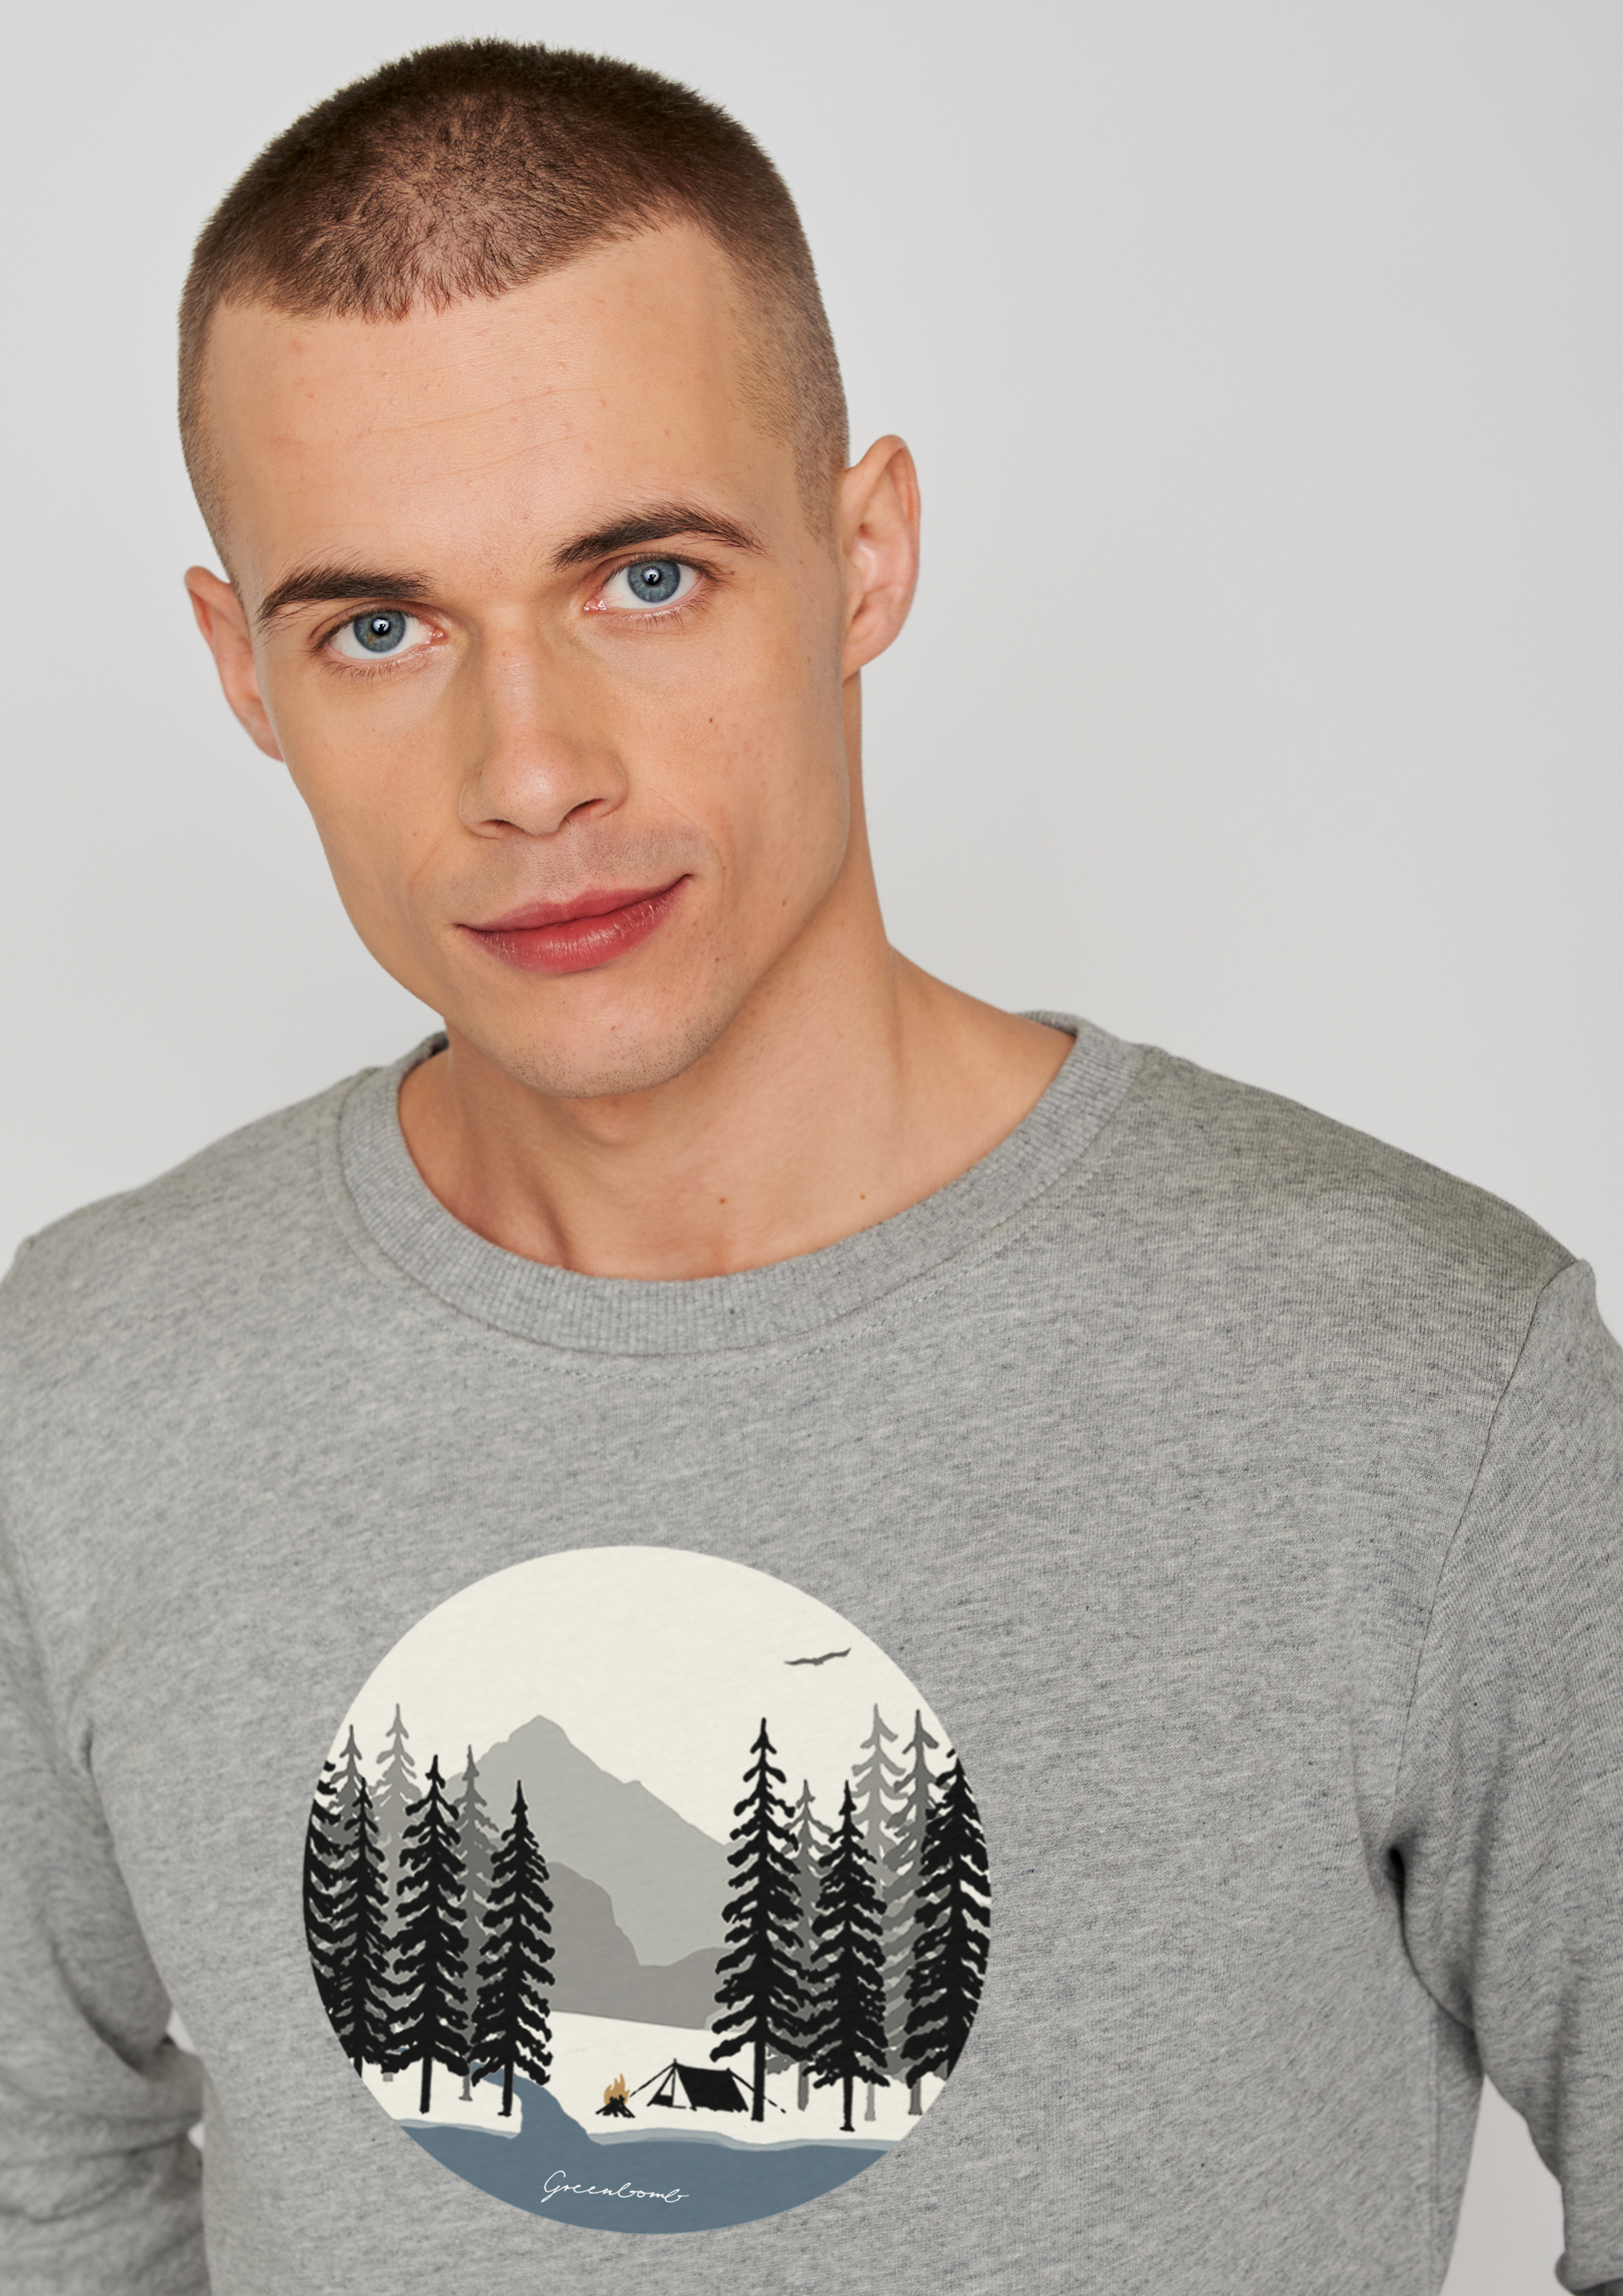 GREENBOMB-NATURE-CAMP-FIRE-wild-Sweater-heather-grey_detail